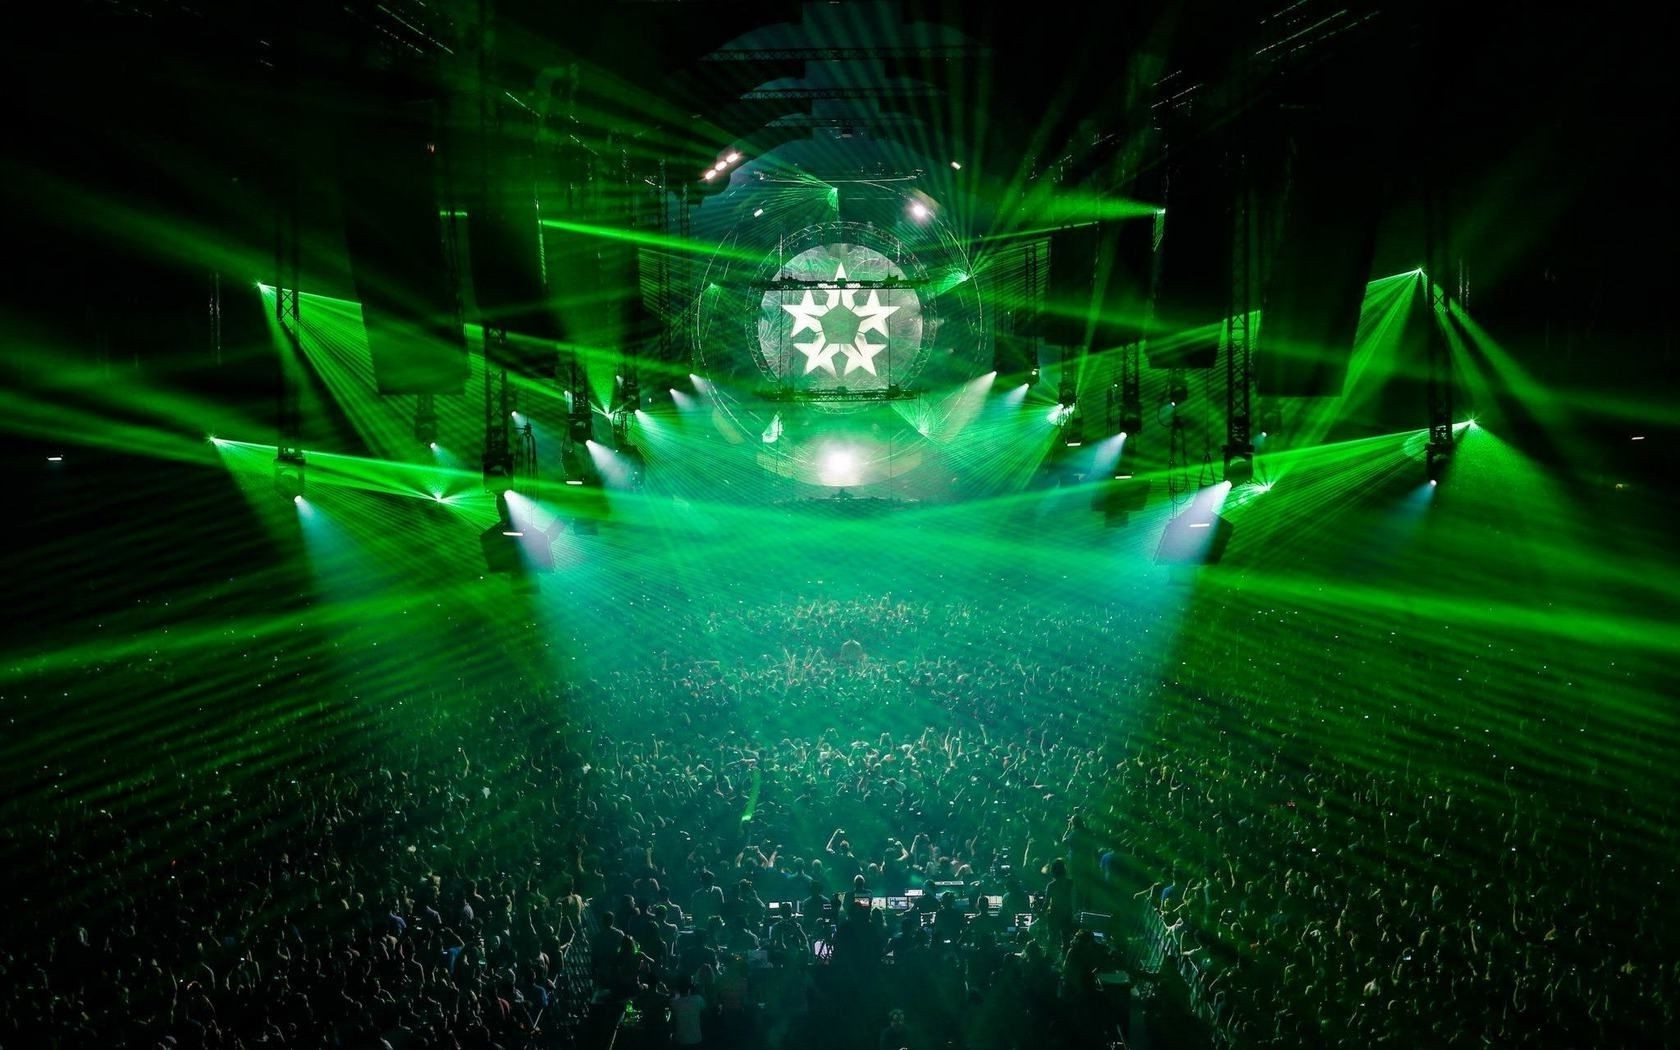 Green lasers and lights